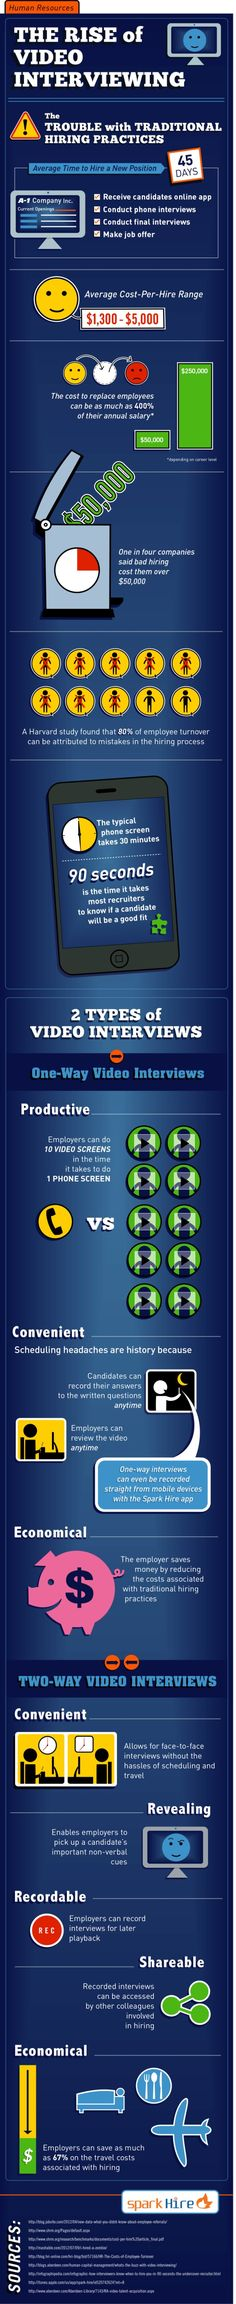 The Rise of video Interviewing - #infographic #productivity  ----------------------------------------------------------  Let's Engage more on Twitter: @navidooo  Let's Connect on LinkedIn: au.linkedin.com/in/navidsaadati